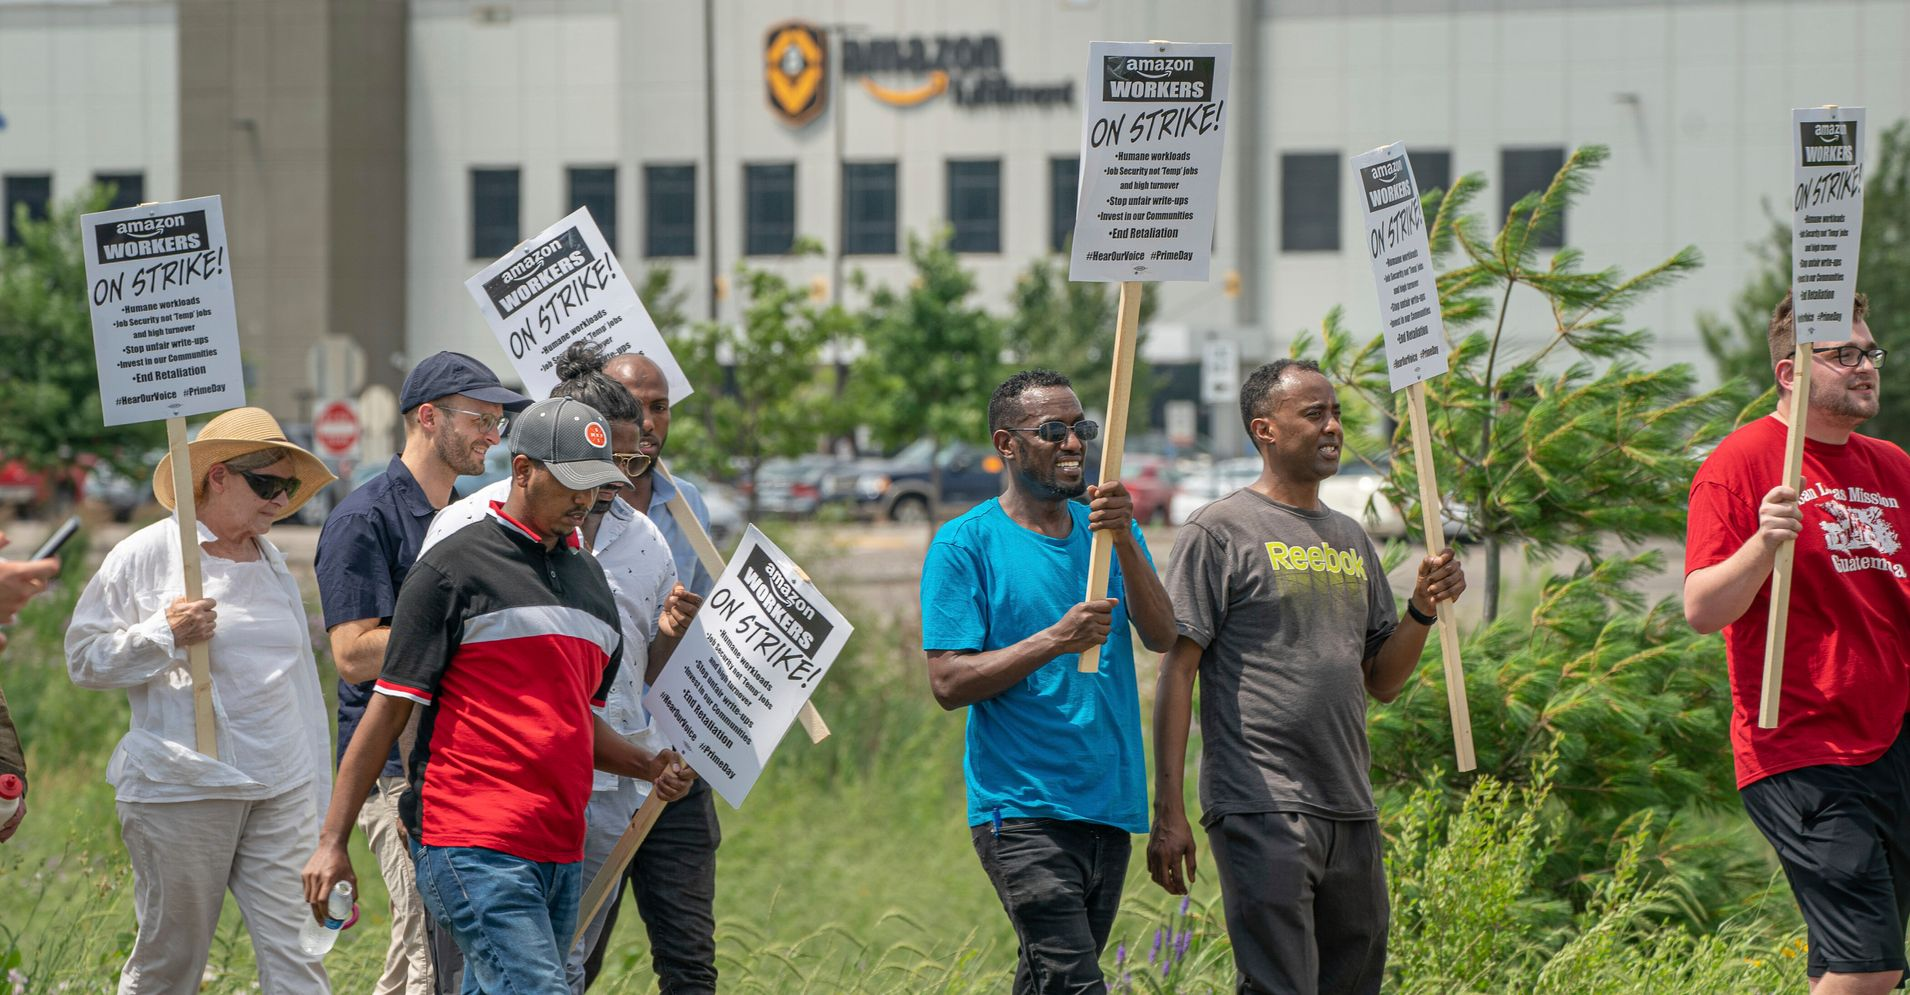 Westlake Legal Group 5d2d5df42600004f0004484f Why Thousands Of Amazon Workers Are Striking On Prime Day